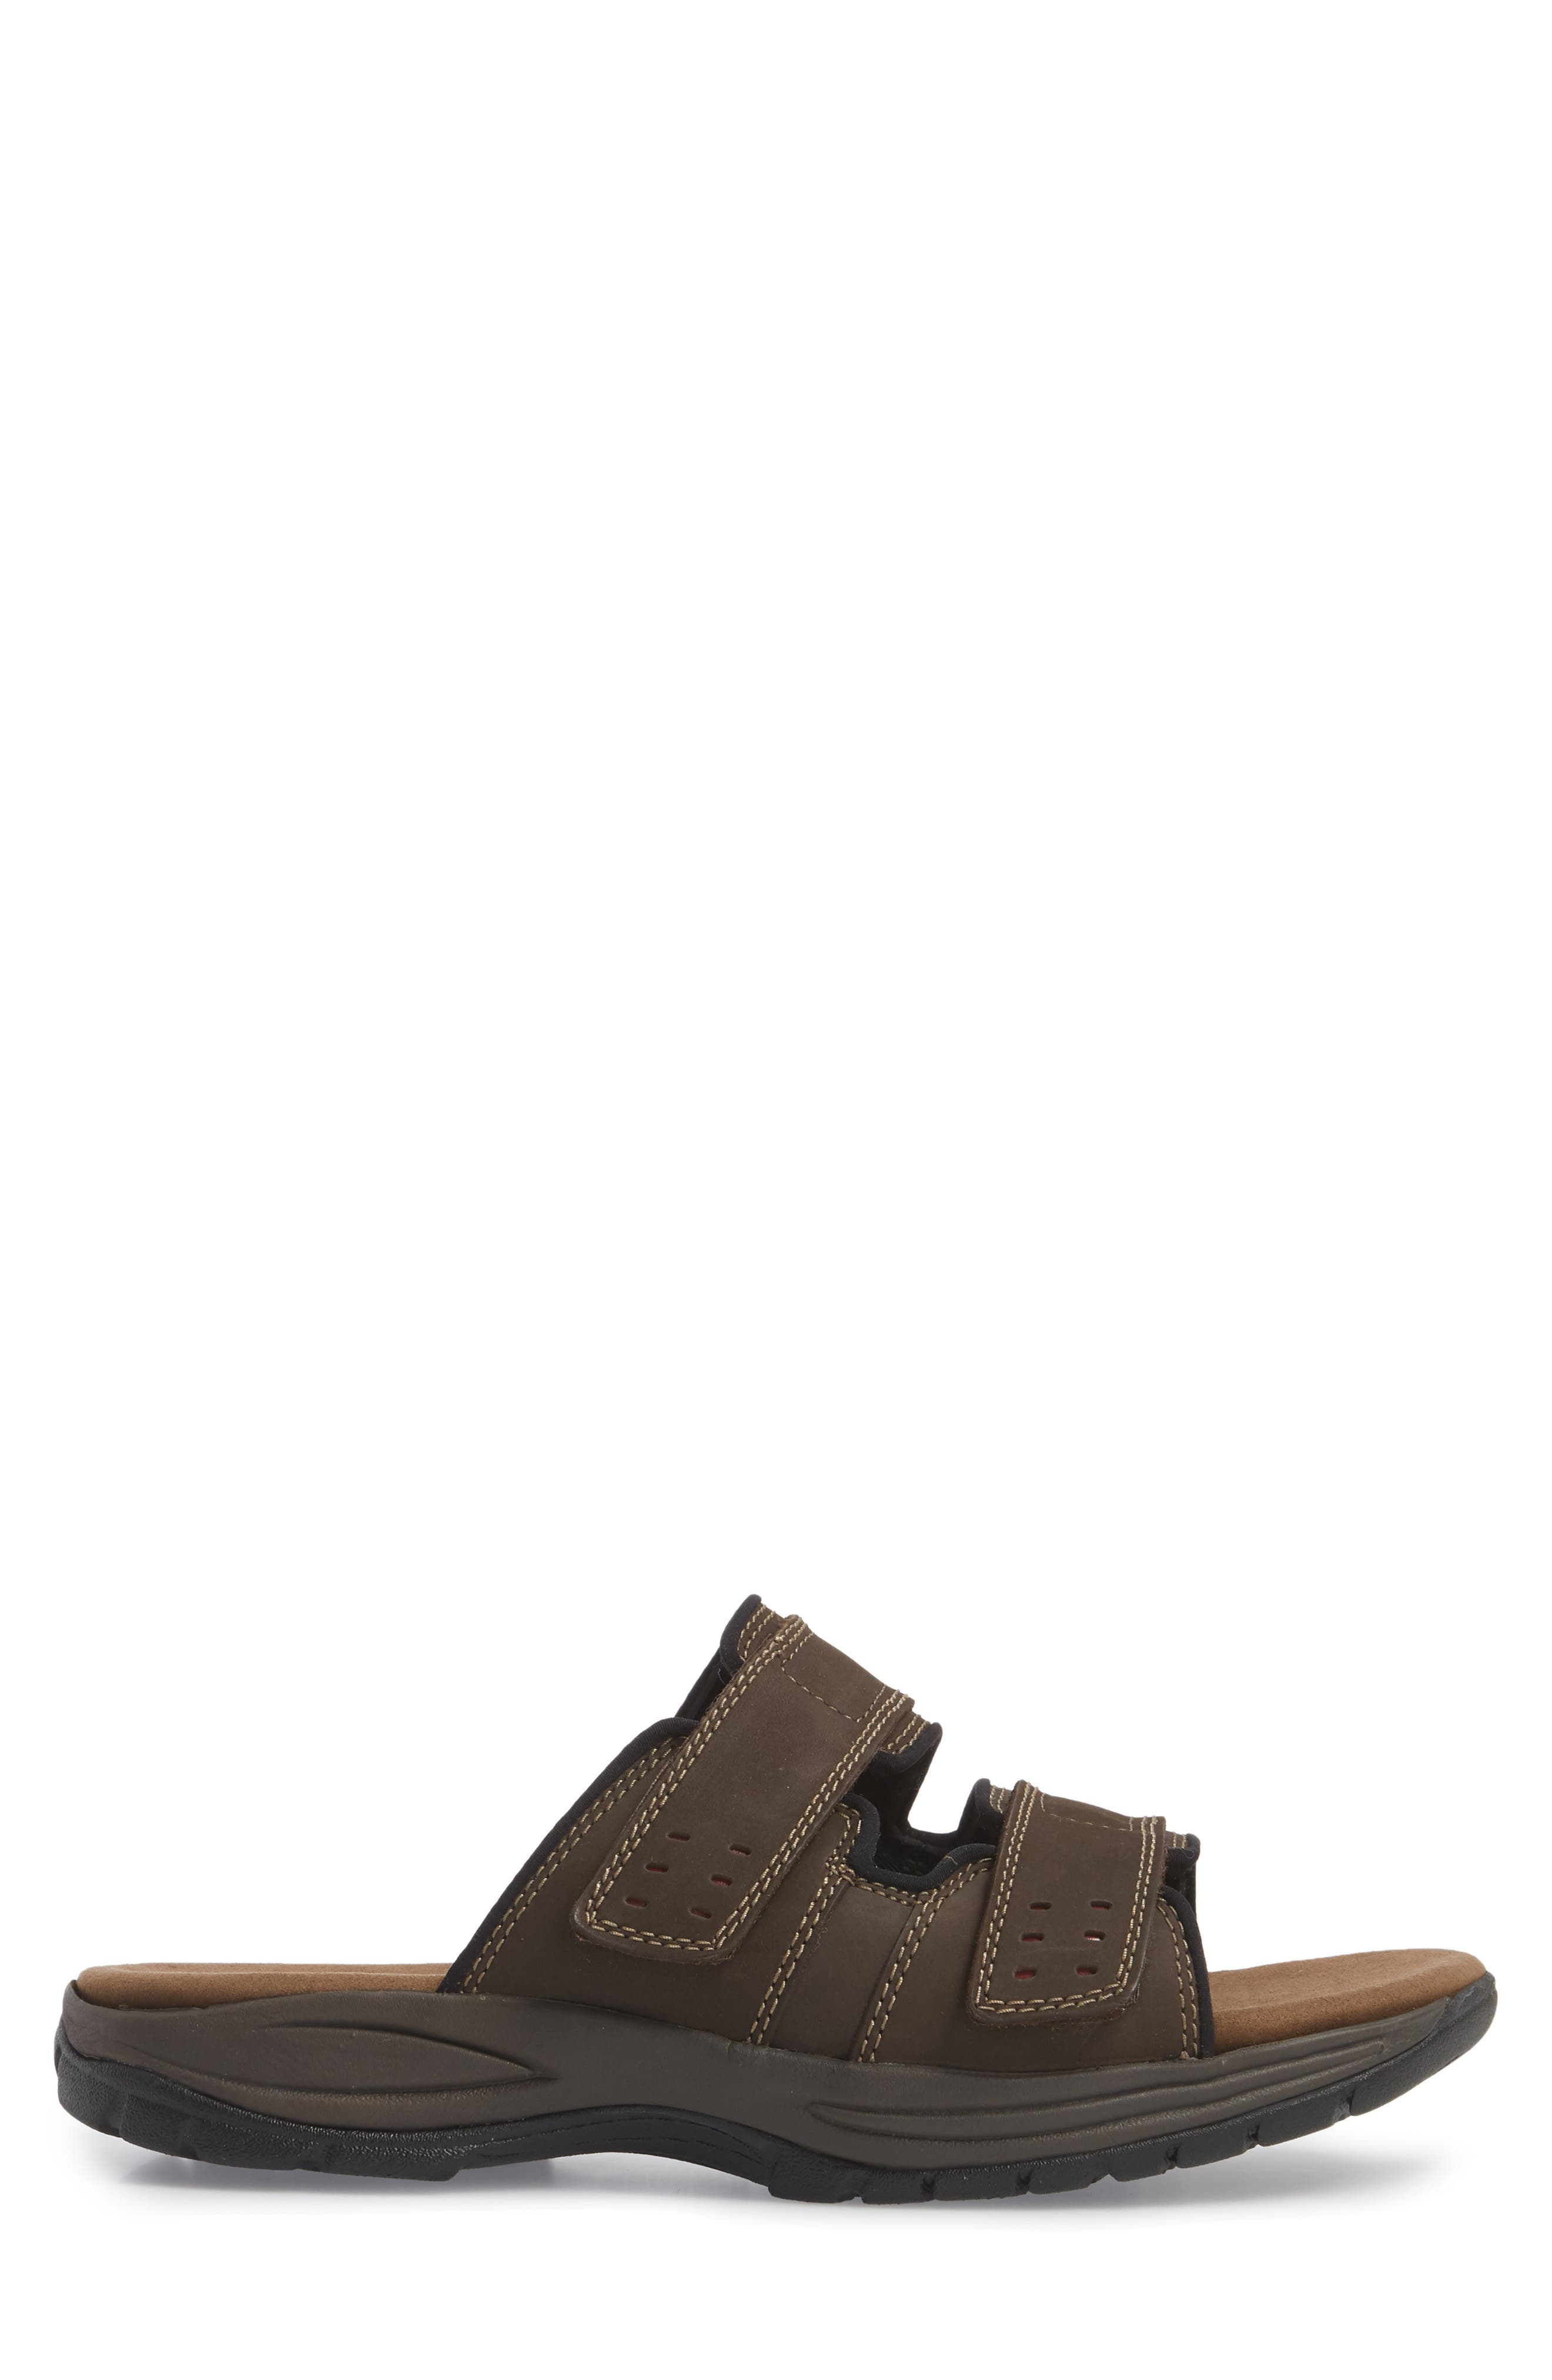 Newport Slide Sandal,                             Alternate thumbnail 3, color,                             Dark Brown Leather